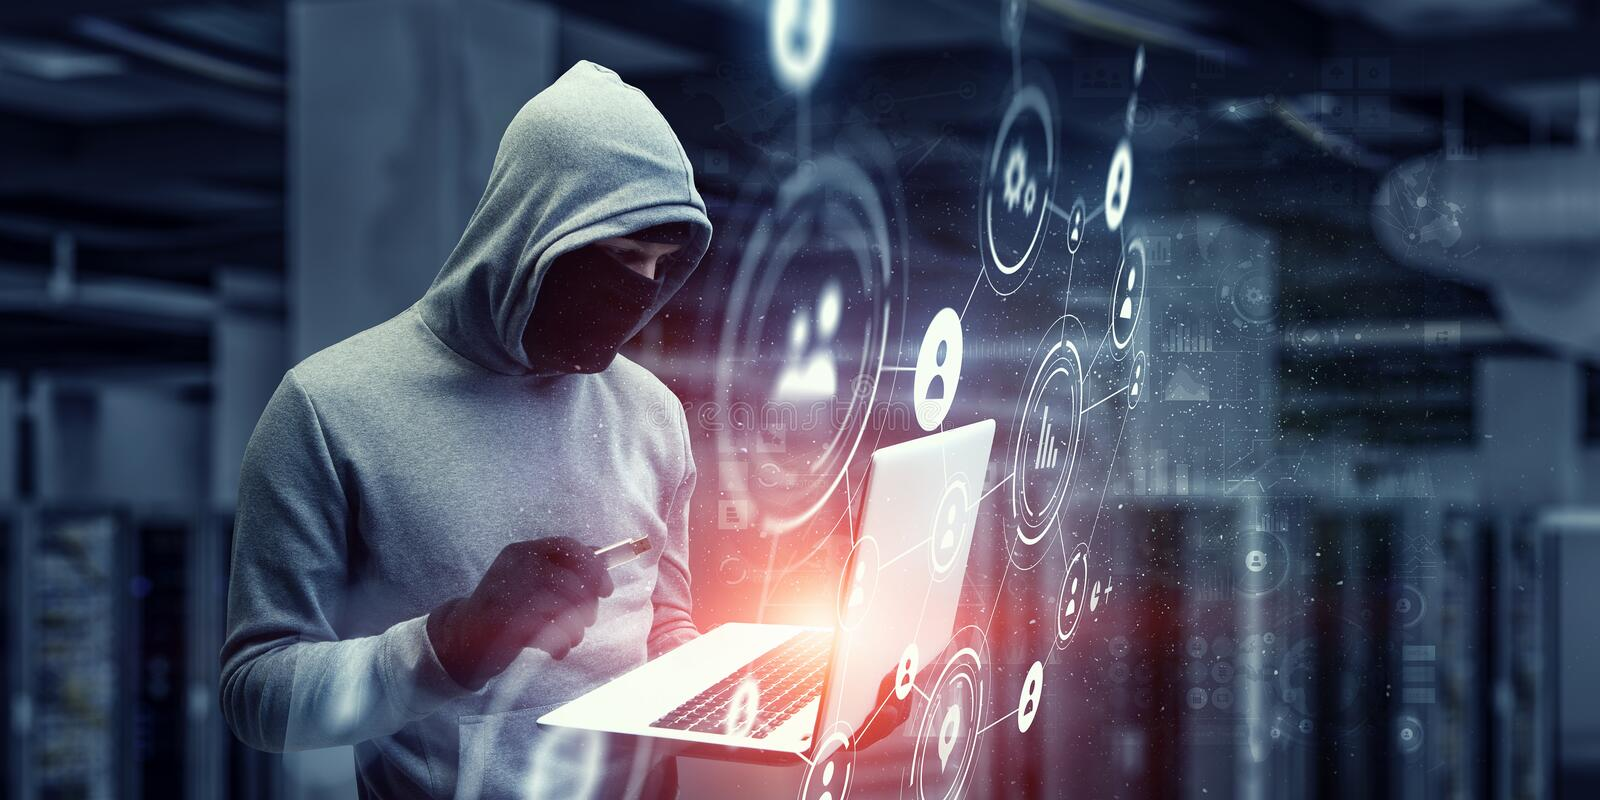 Network security and privacy crime. Mixed media. Computer hacker in hoodie and mask stealing data from laptop. Mixed media stock image